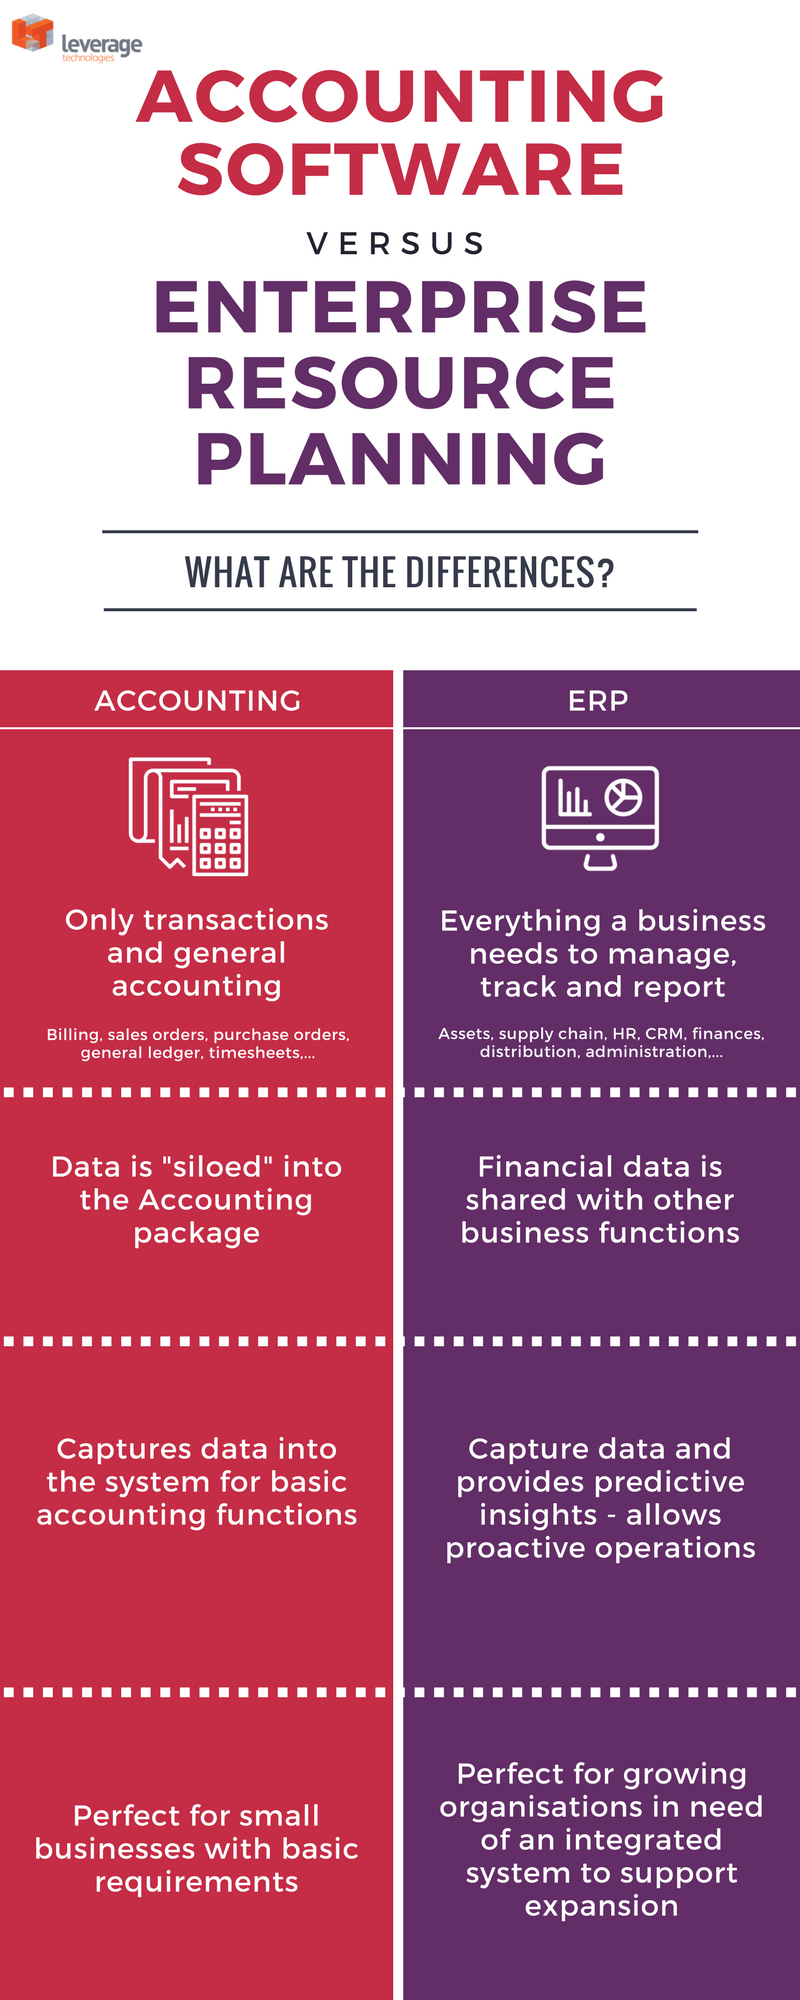 Accounting Software Vs Enterprise Resource Planning Software (ERP)